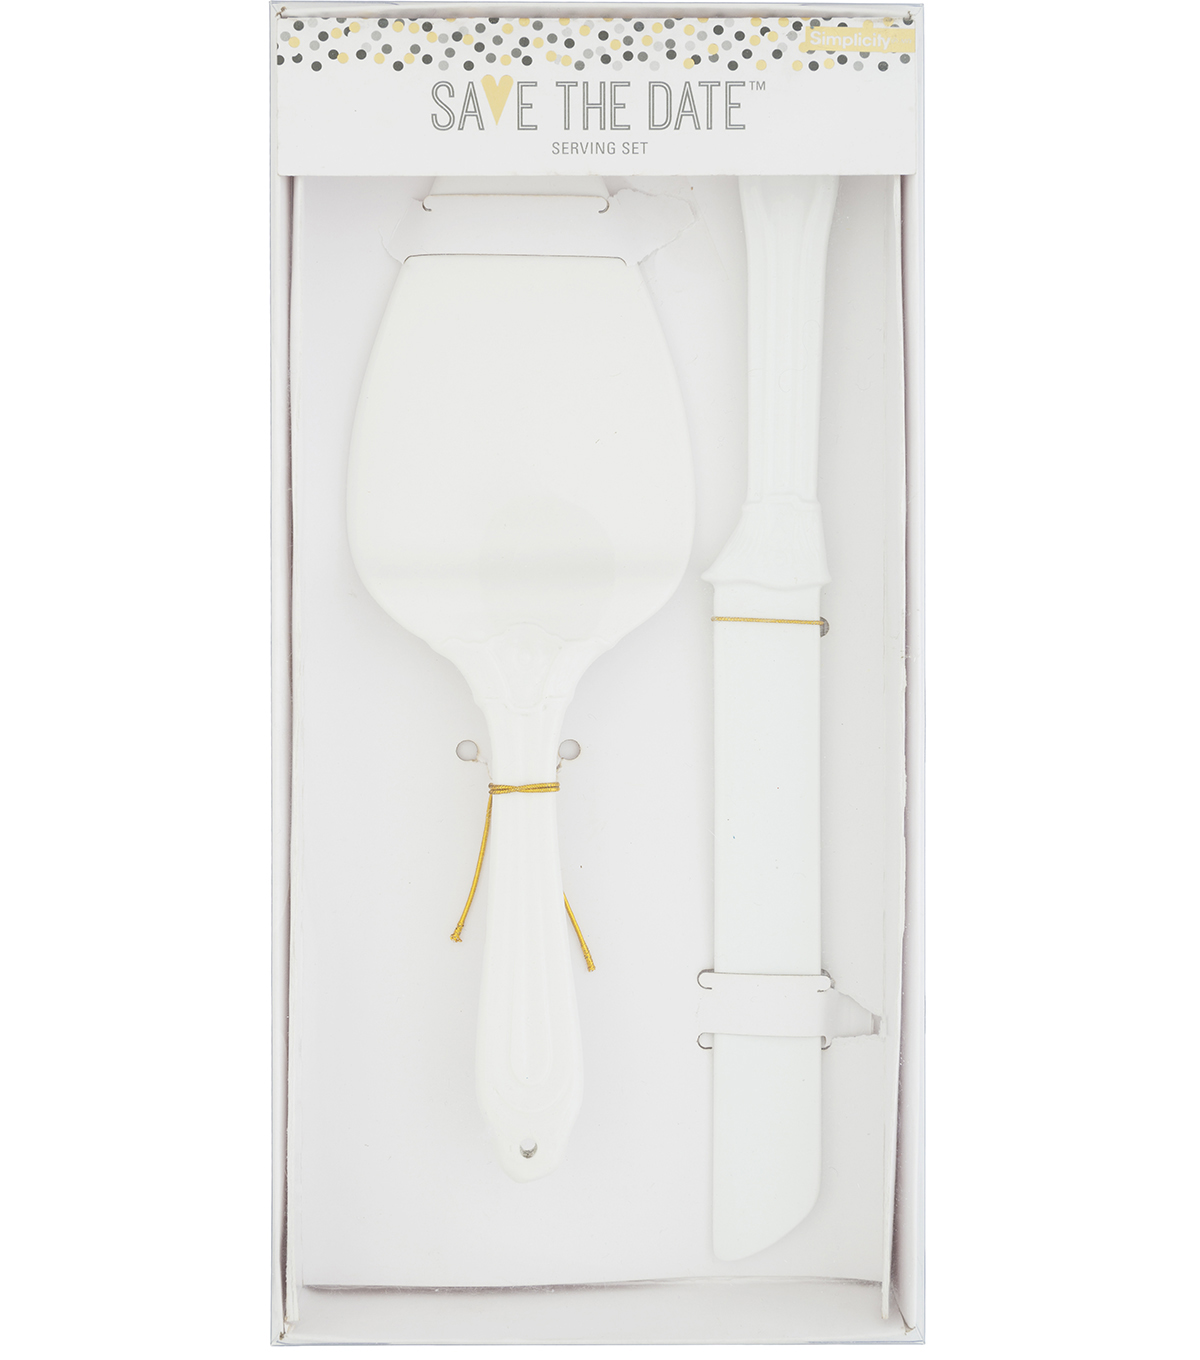 Save The Date Serving Set-White